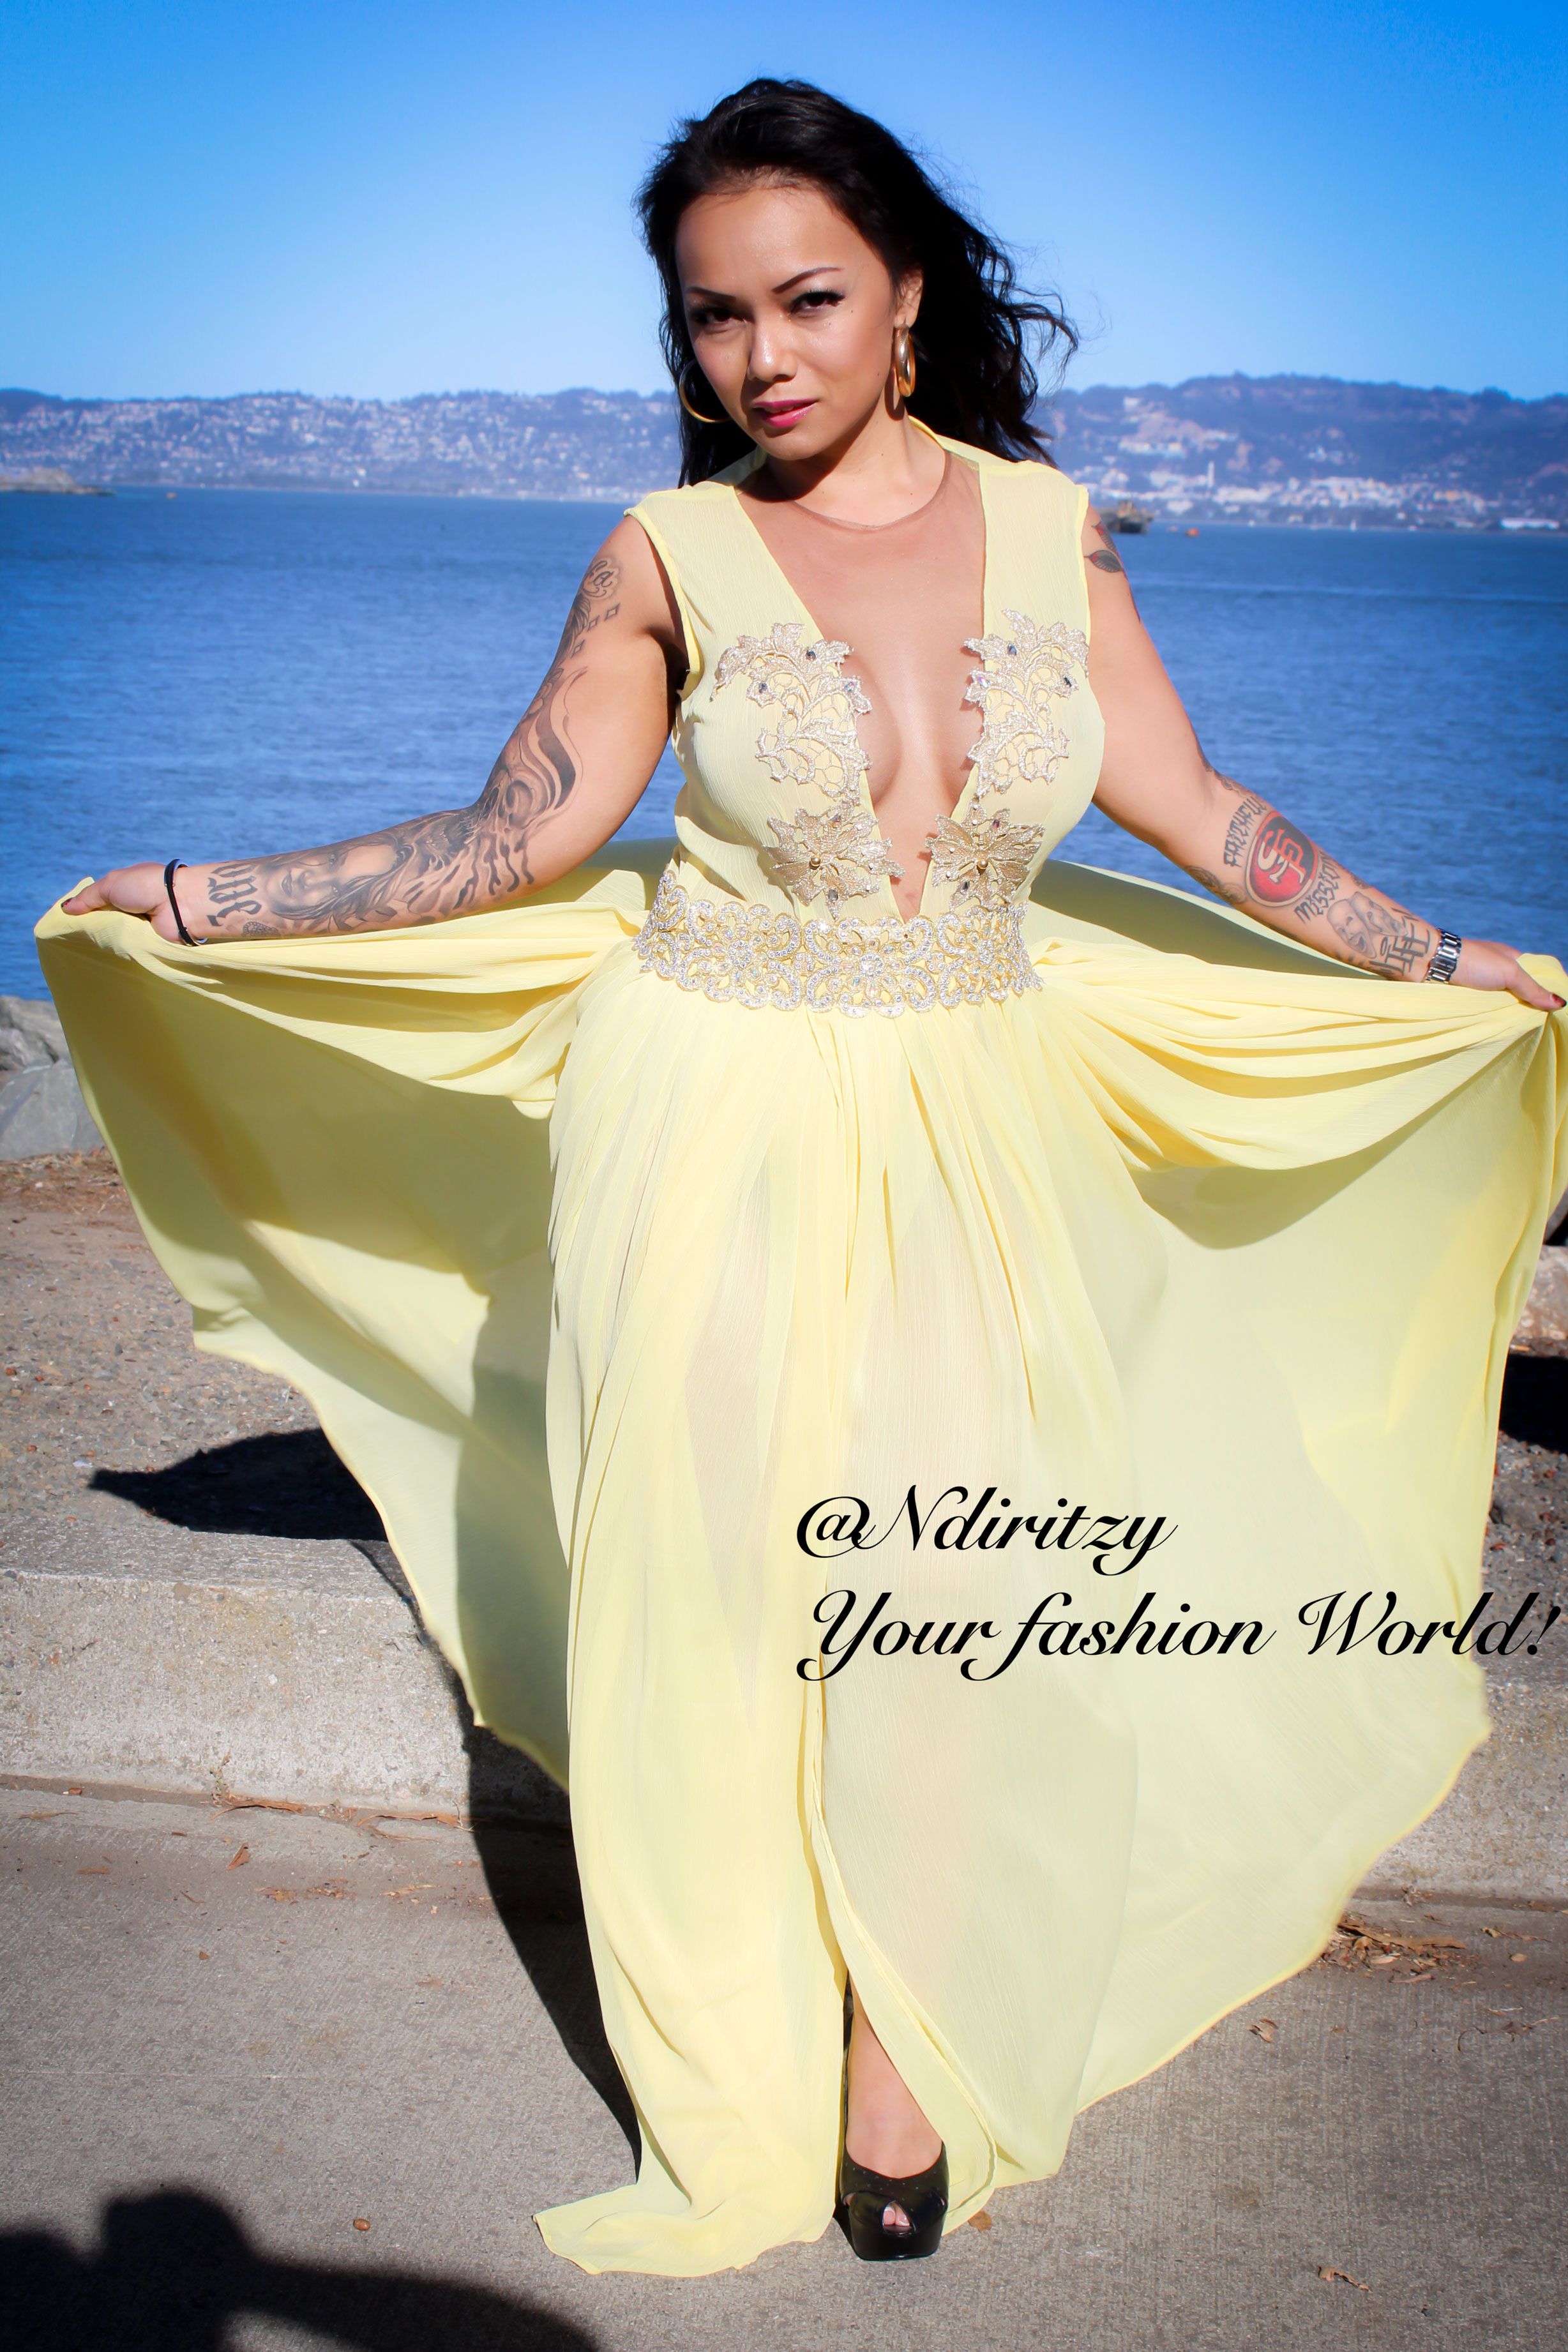 Bridesmaids fit and flare dress with a side slit ndiritzy yellow bridesmaids dresses ombrellifo Gallery